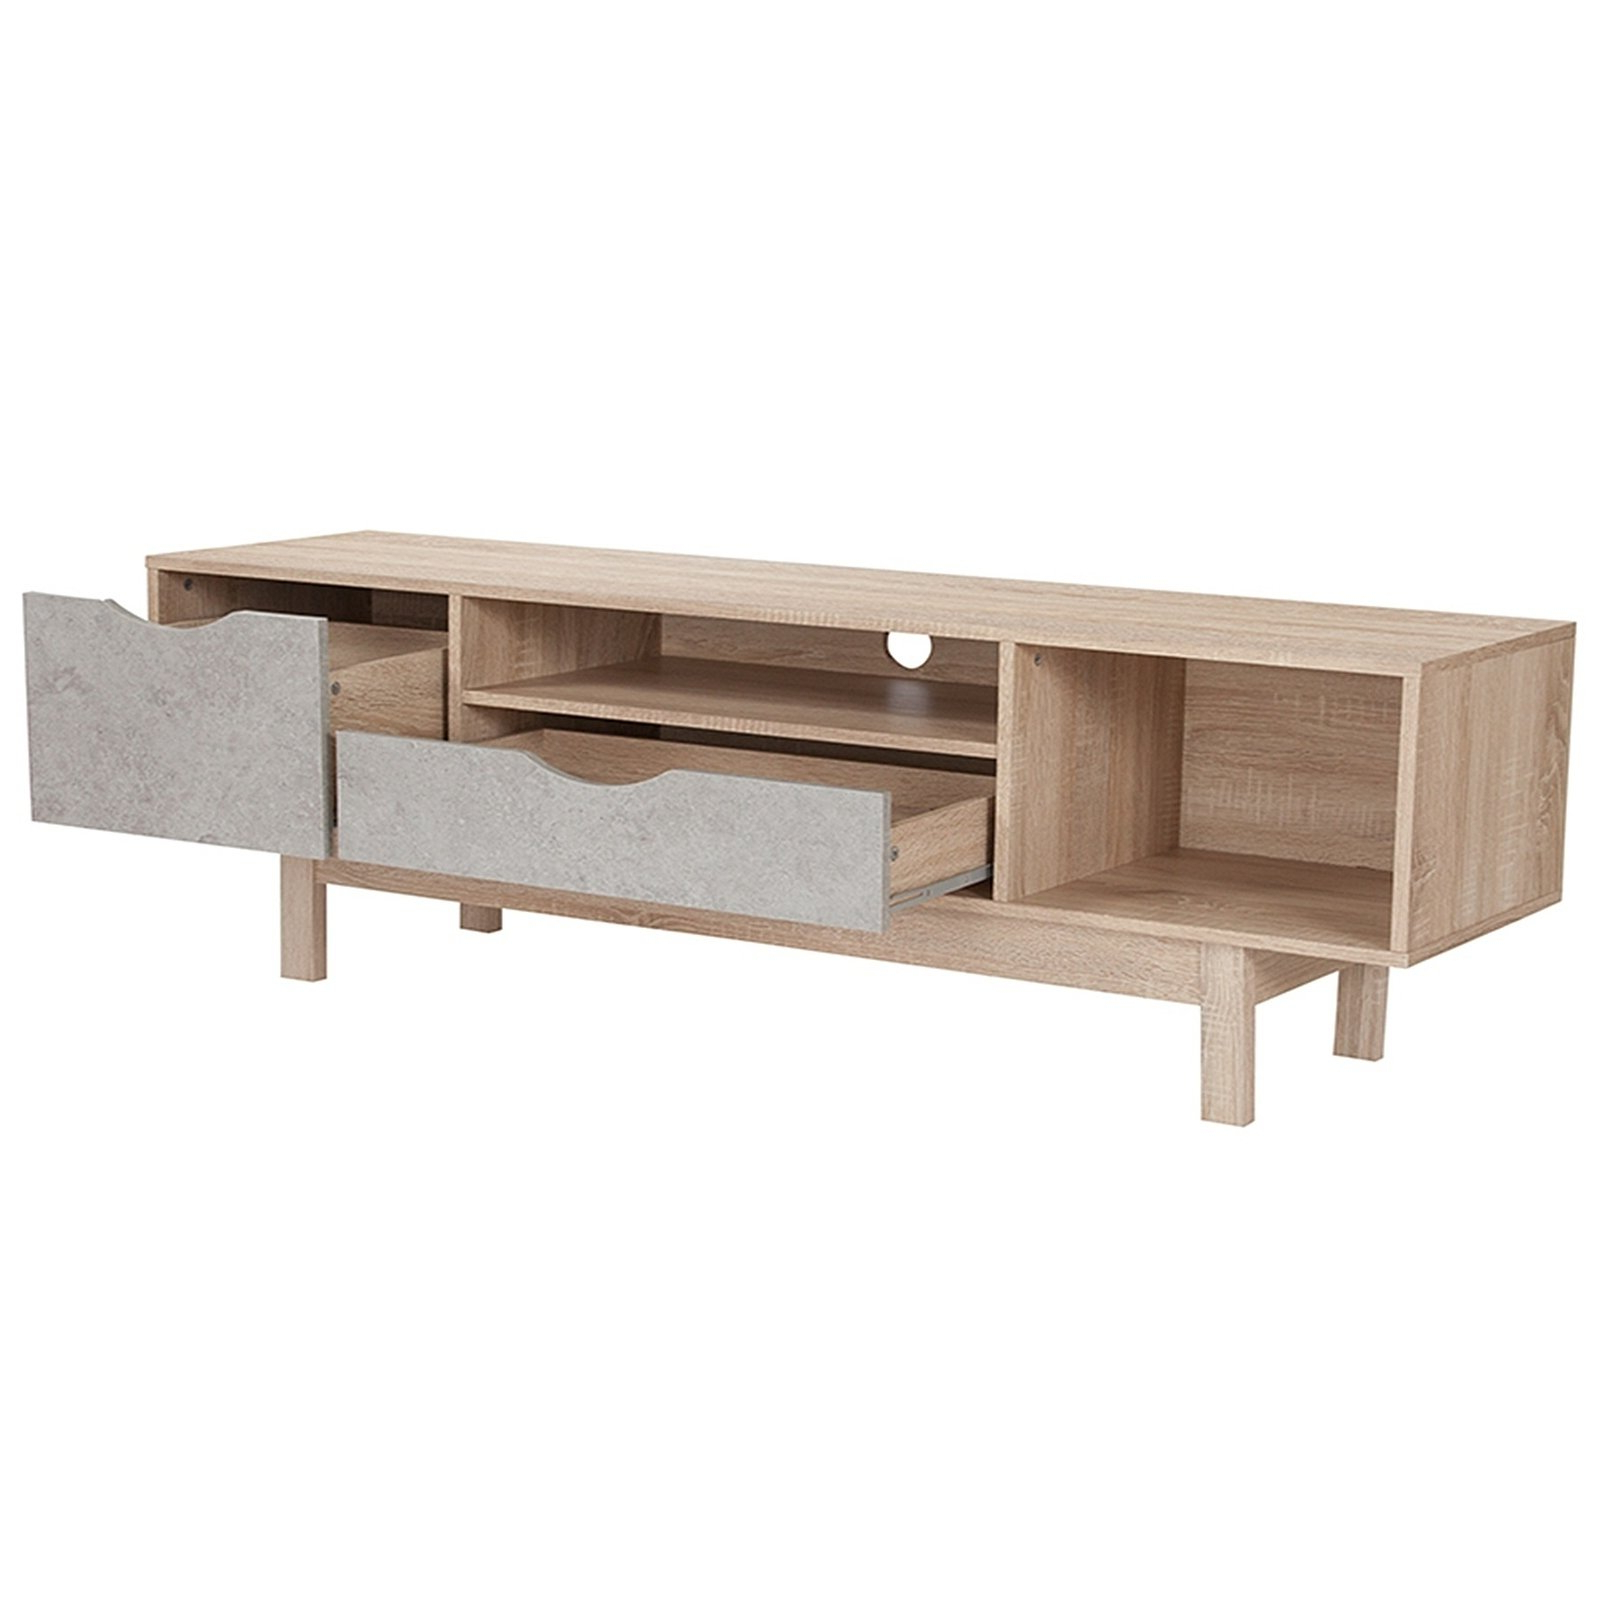 Shop Norwalk 2 Drawer Tv Stand With Open Shelves In Oak Wood Finish Inside 2017 Santana Oak Tv Furniture (View 18 of 20)